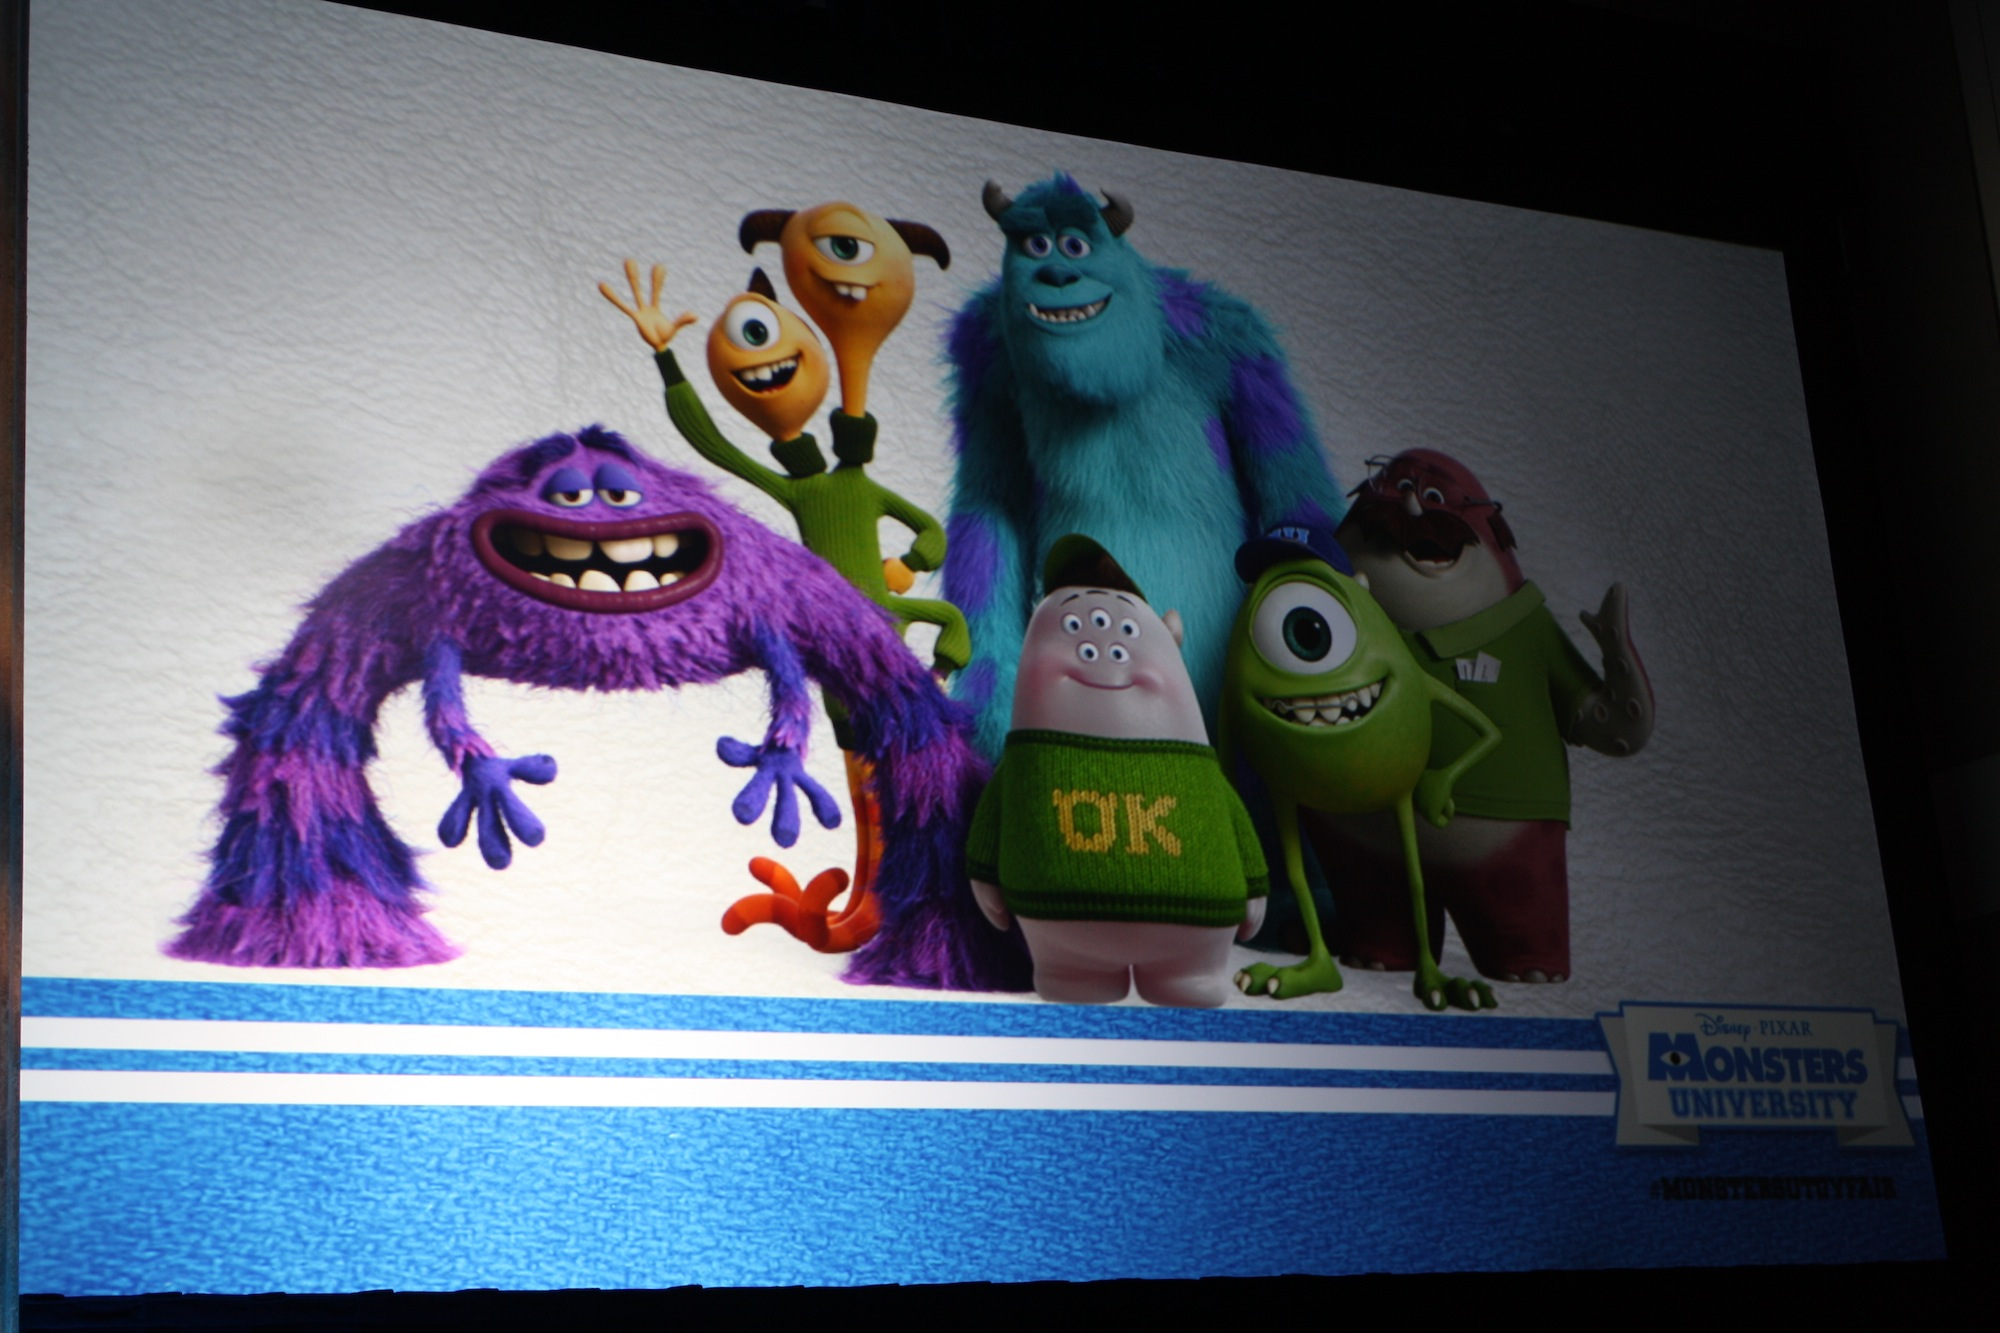 Monsters University Characters - Photo by Samad Rizvi